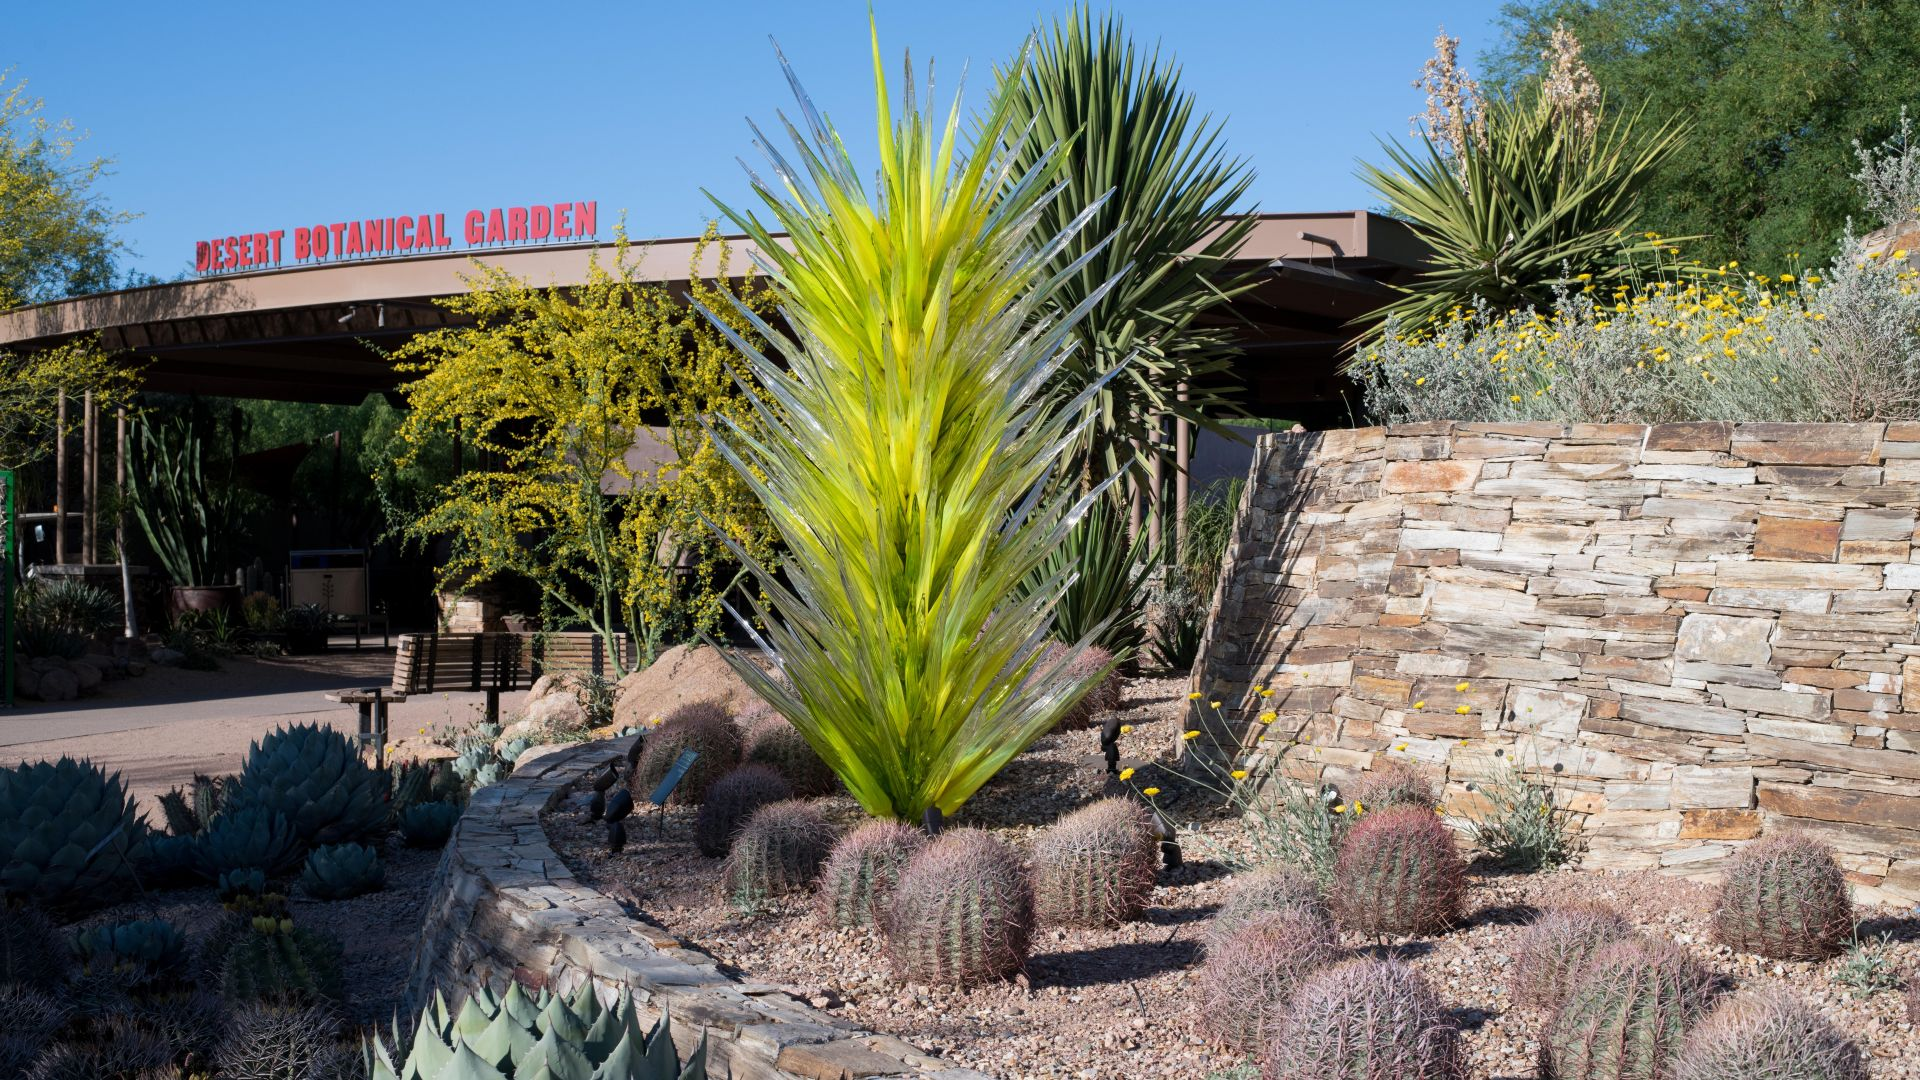 Cacti and landscaping to the right with an entrance in the back.